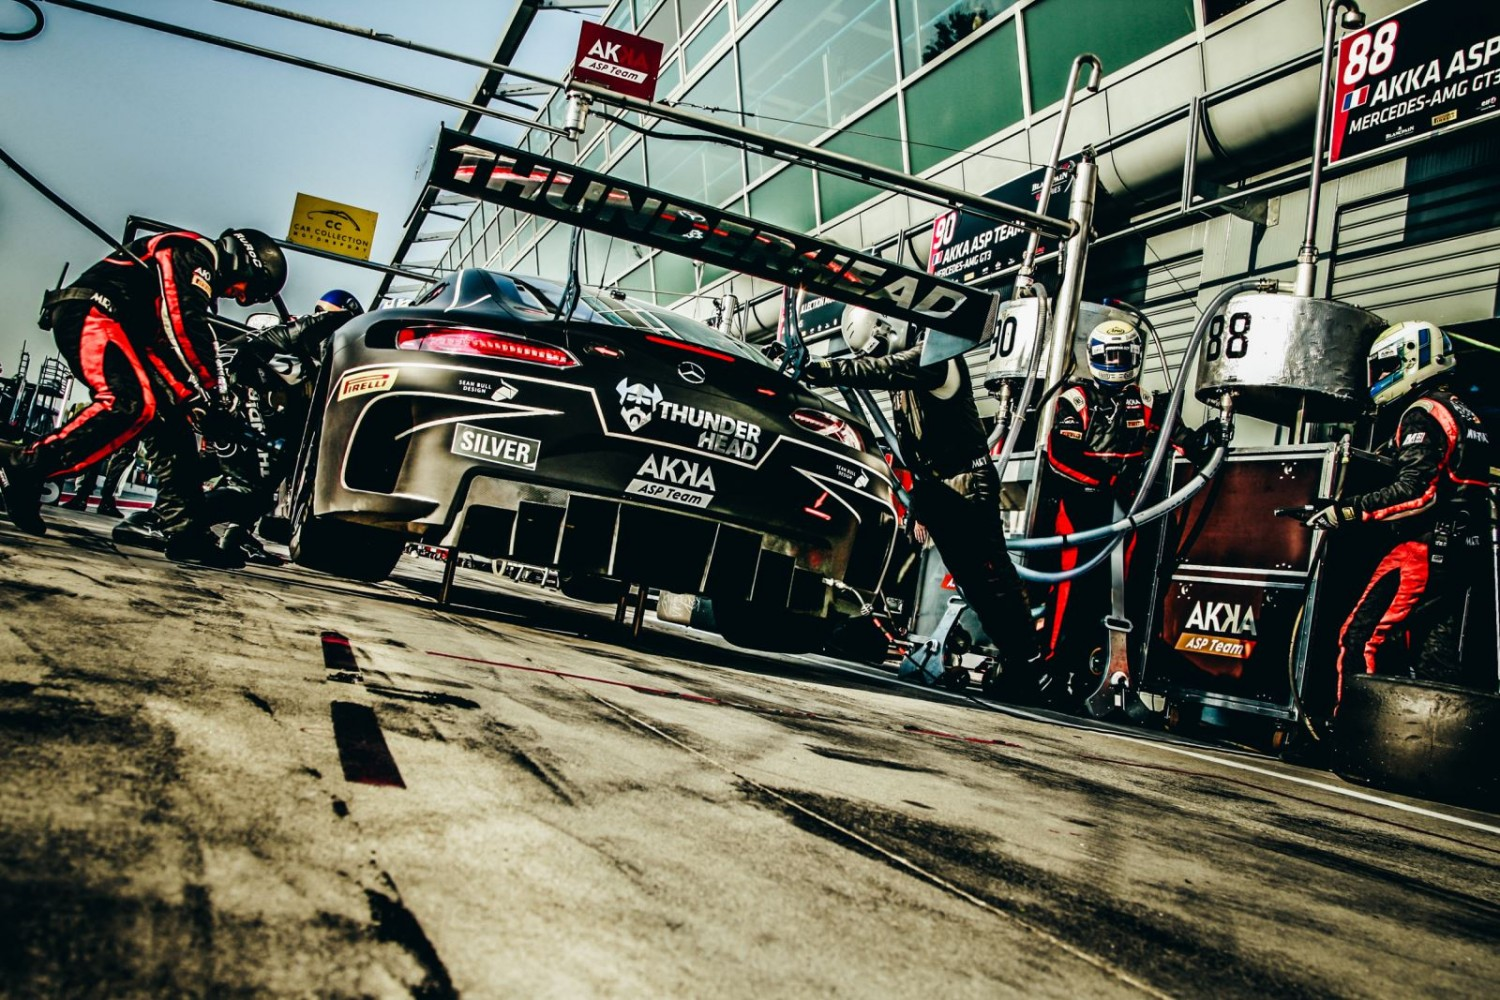 New developments to watch out for during the 2019 Blancpain GT Series